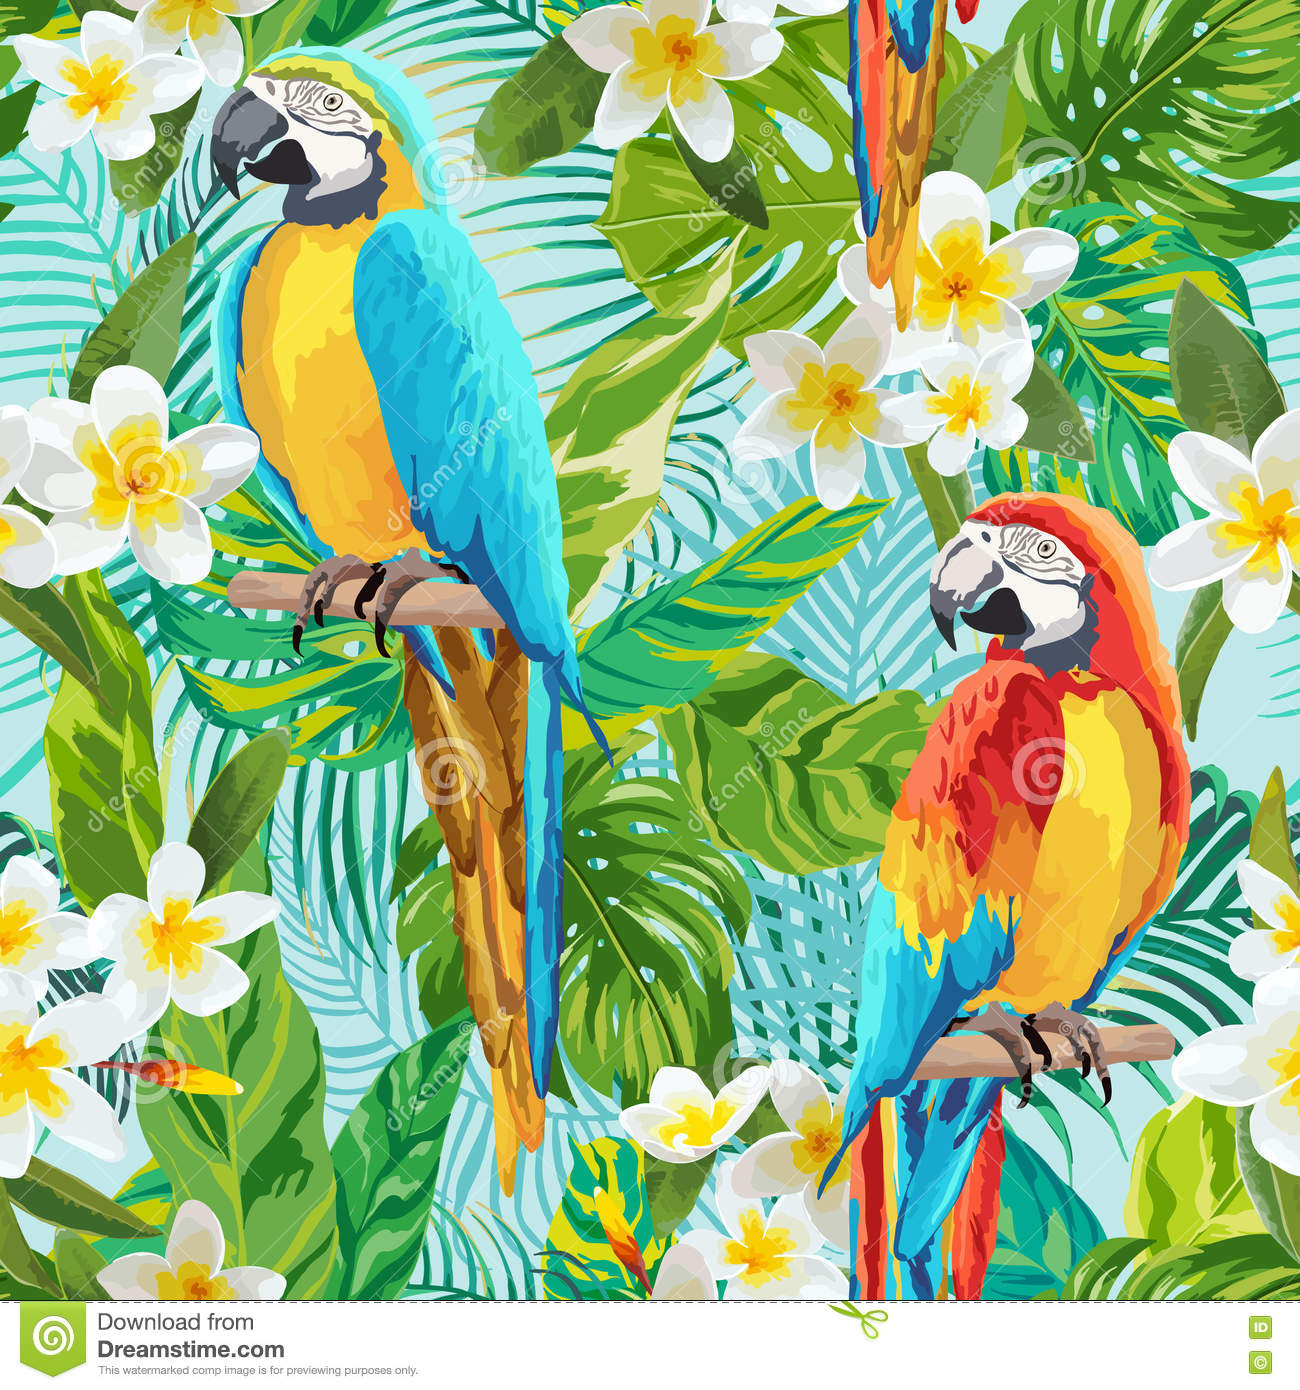 Vintage Style Tropical Bird And Flowers Background: Tropical Flowers And Birds Background